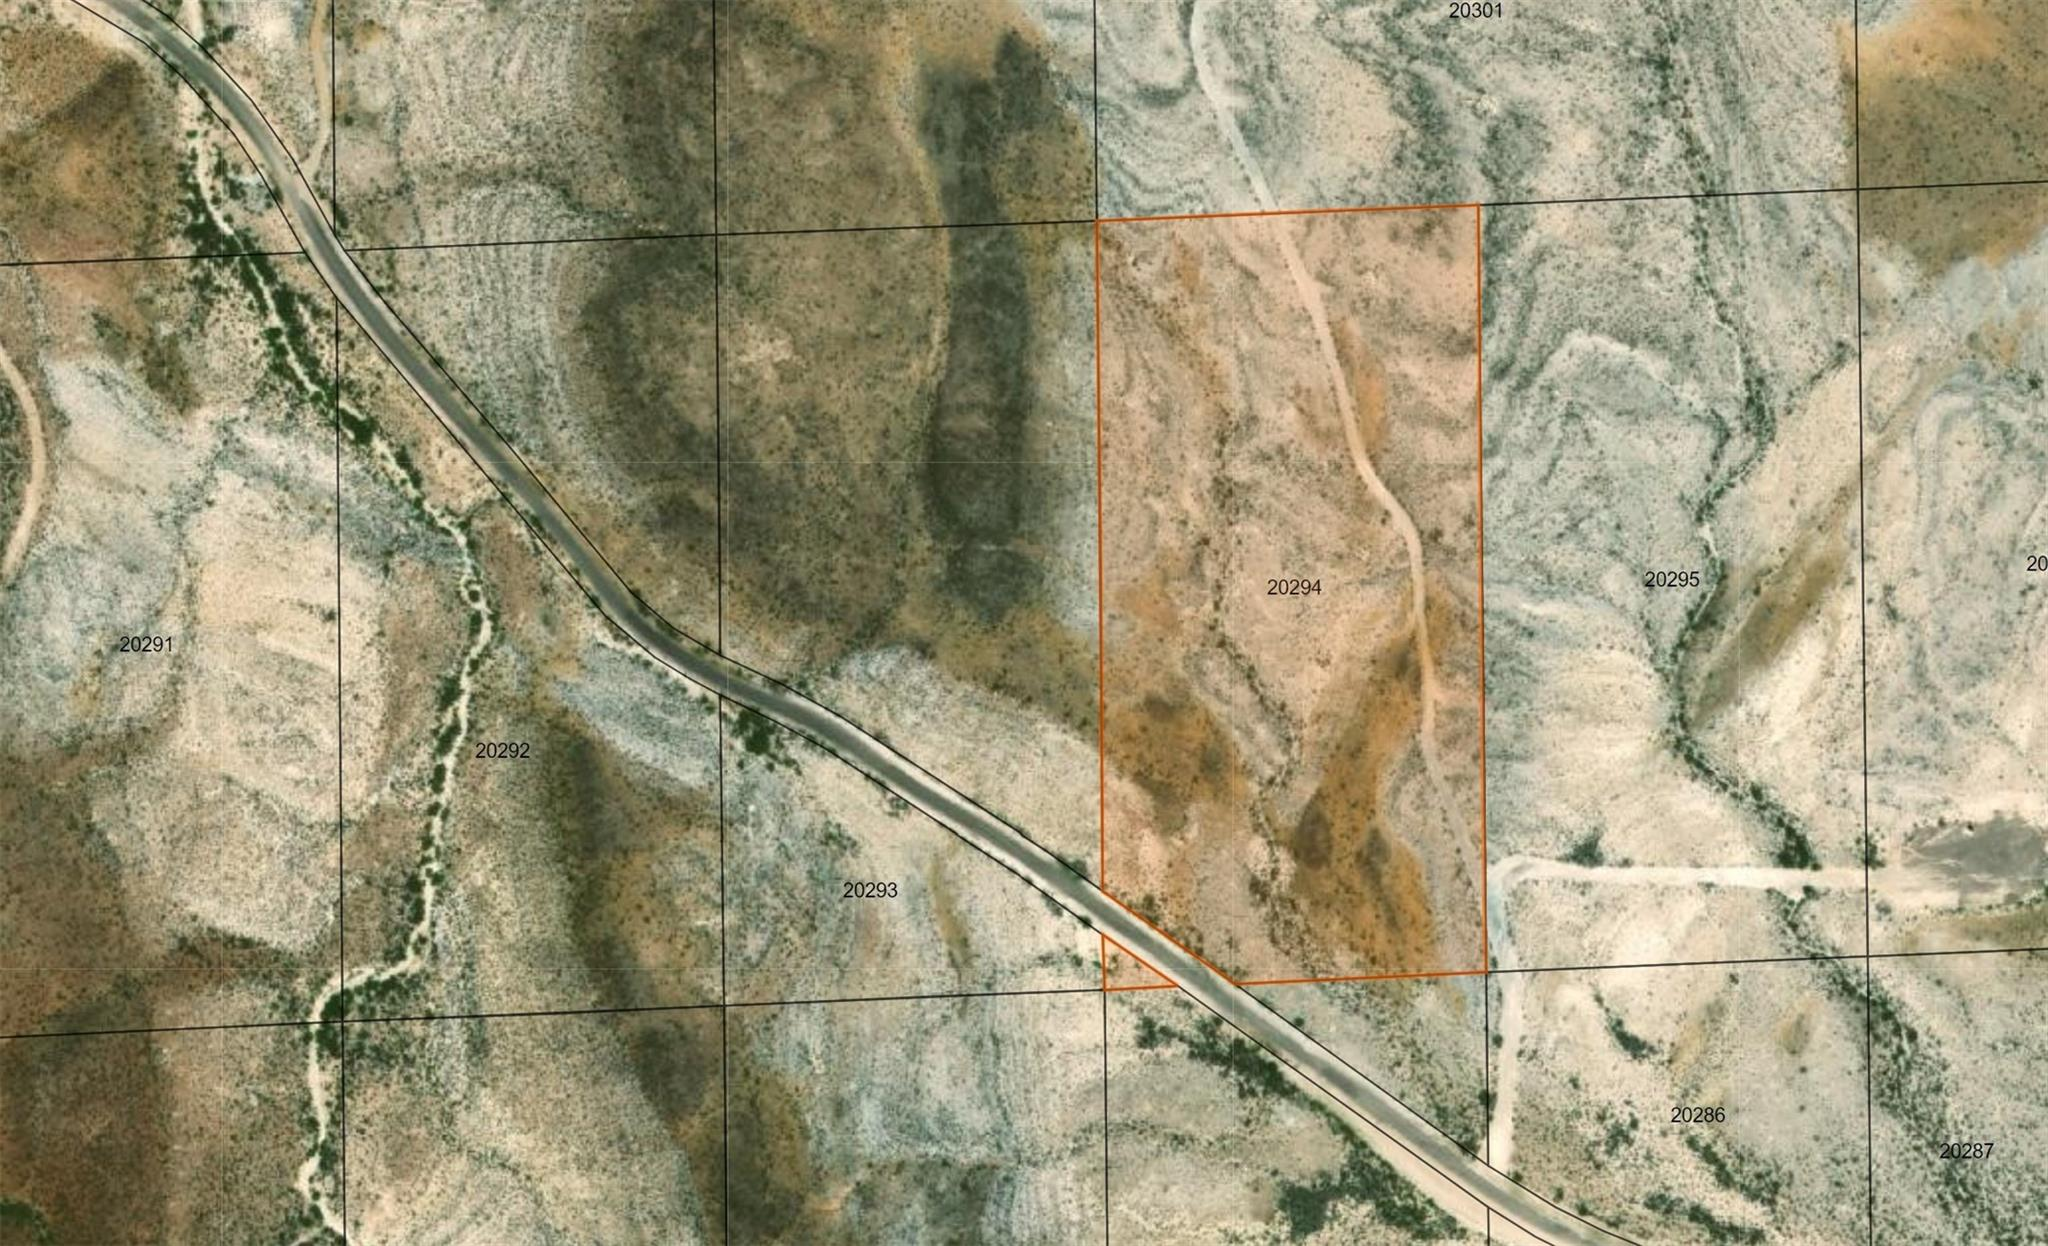 000 Terlingua Ranch Rd Property Photo - Study Butte-Terlingua, TX real estate listing